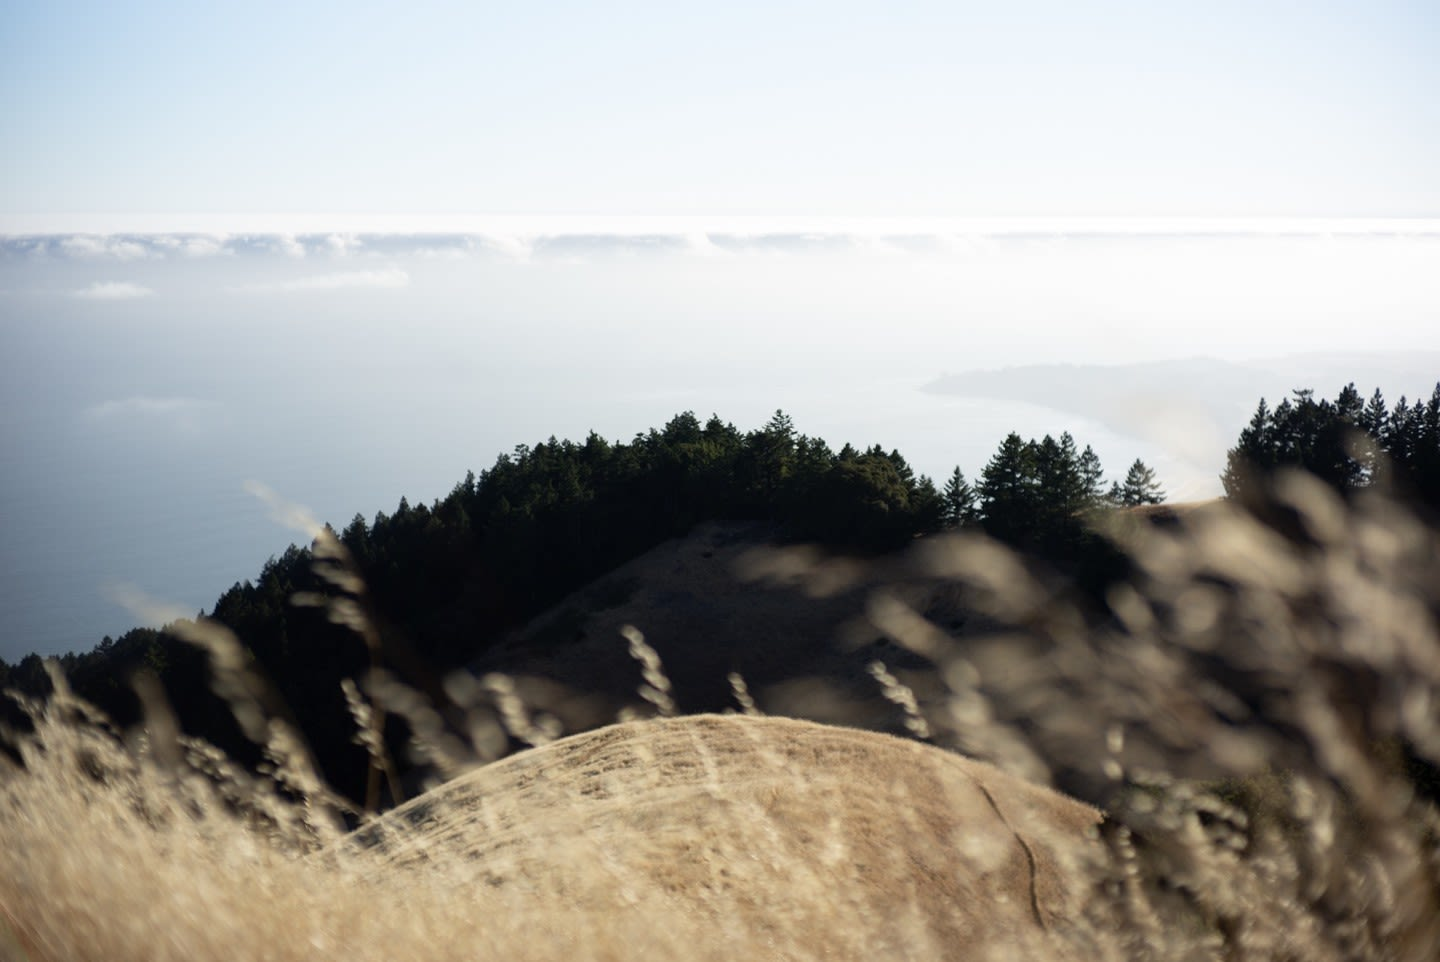 Jul 15, 2018 - Mount Tam + Stinson Beach: 6